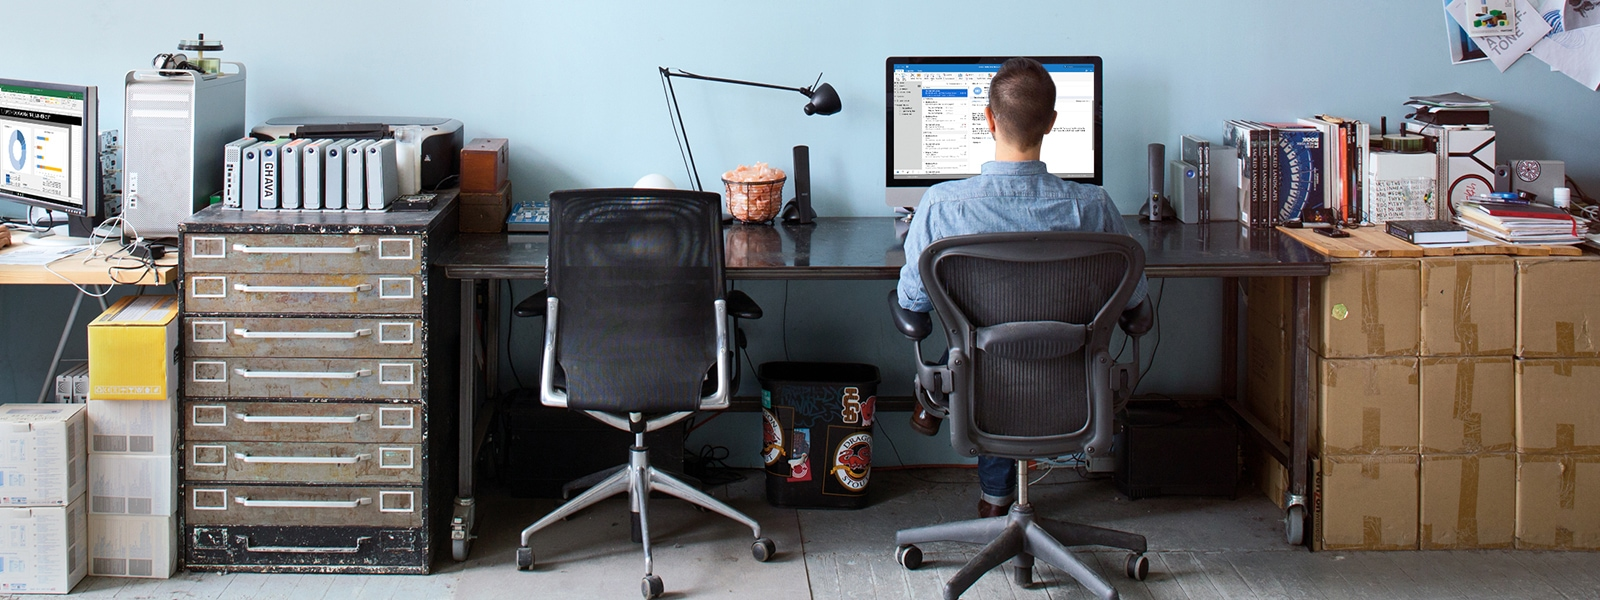 Man sitting at office desk on computer